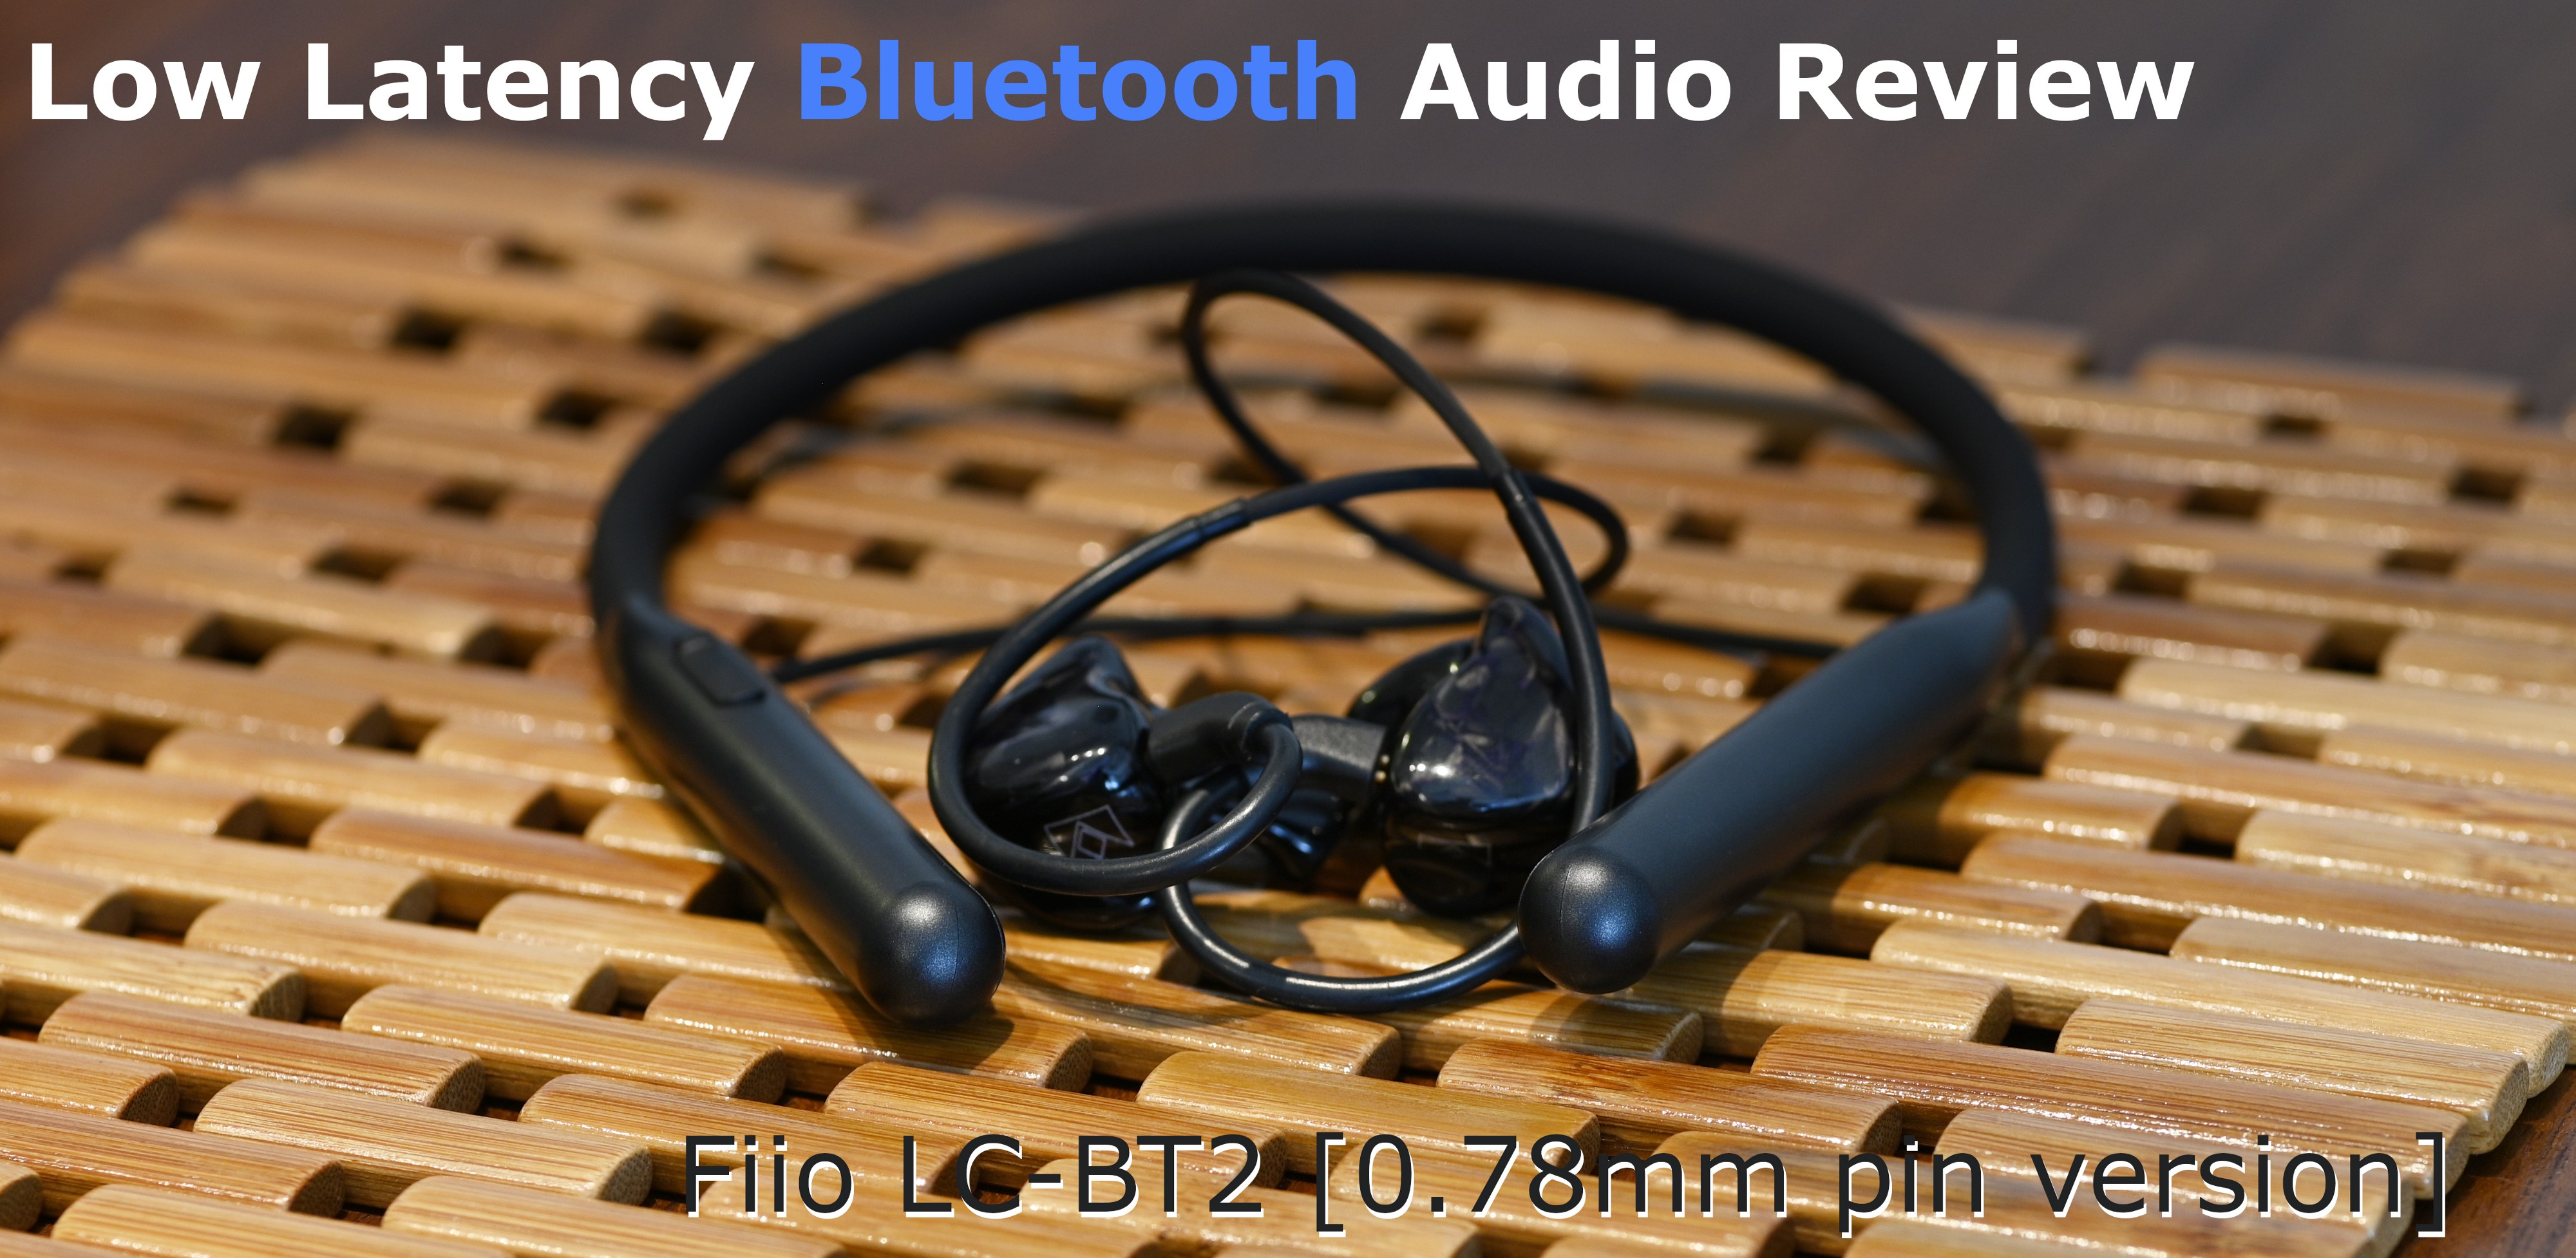 The Fiio LC-BT2 2-Pin 0.78mm version with the Noble K10 custom IEM's